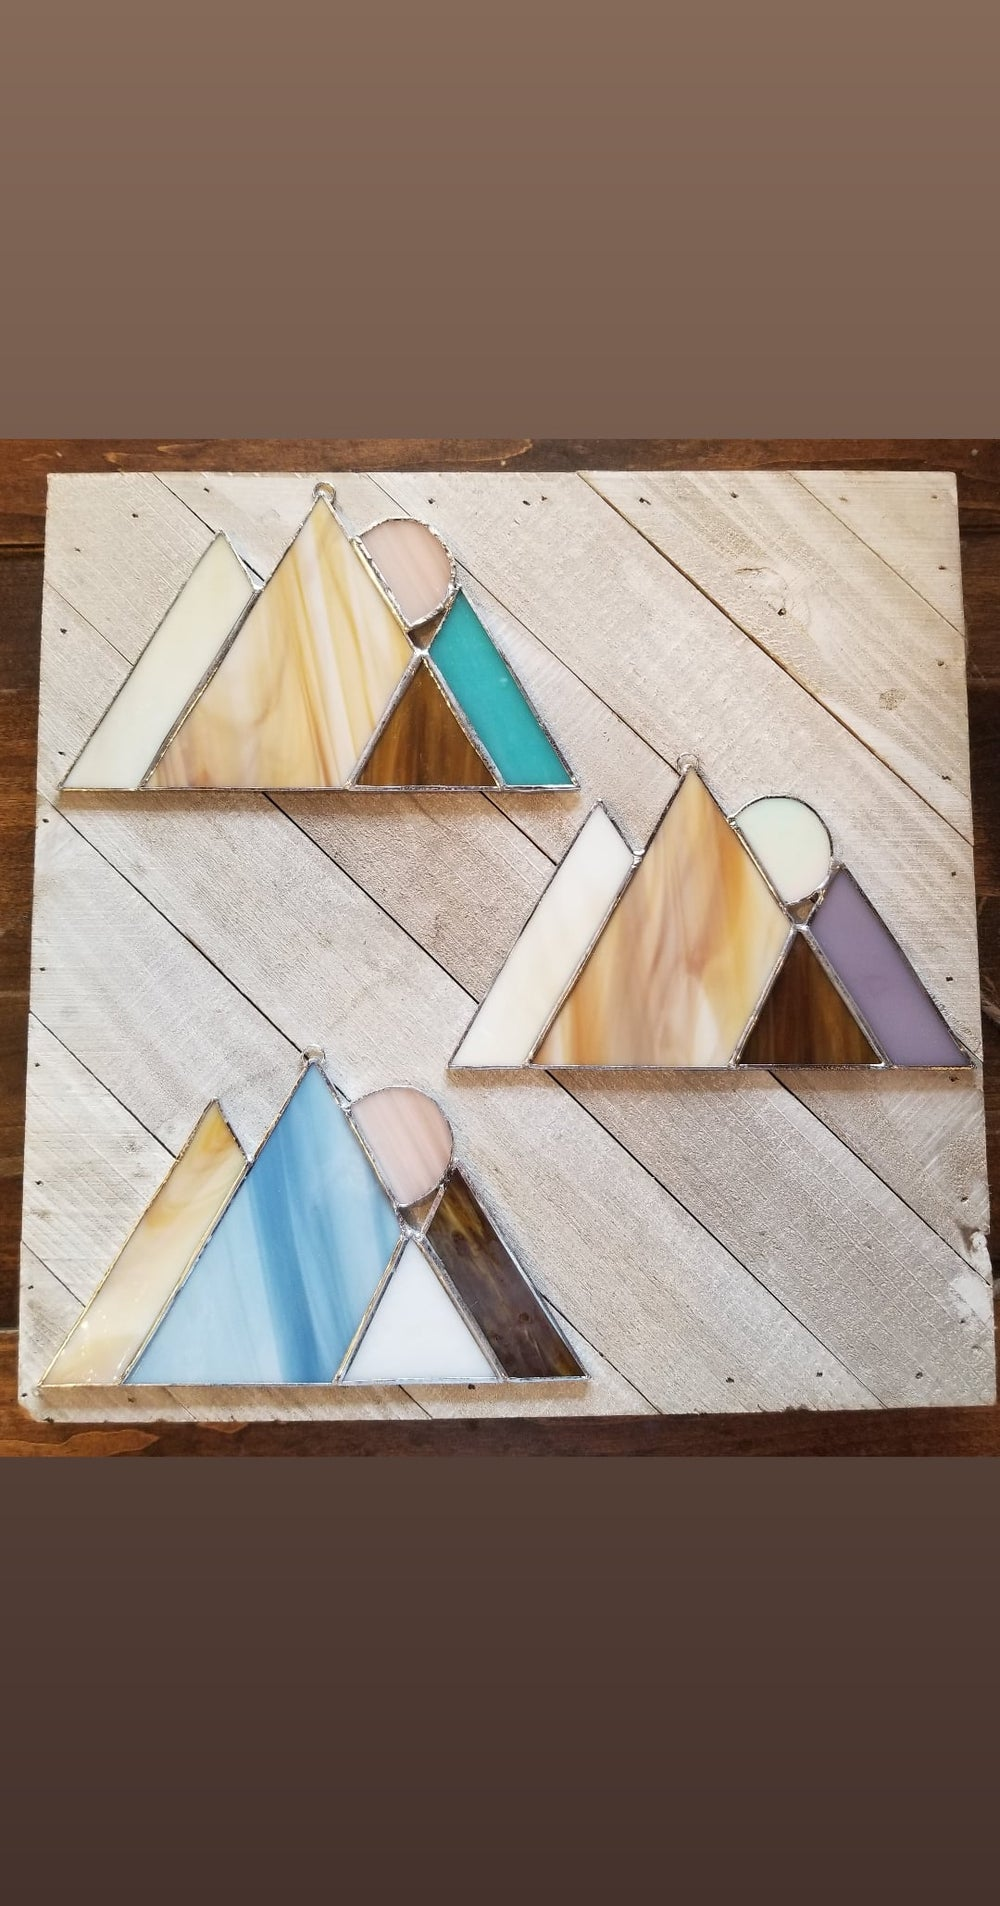 Image of Moon Mountain Range-stained glass